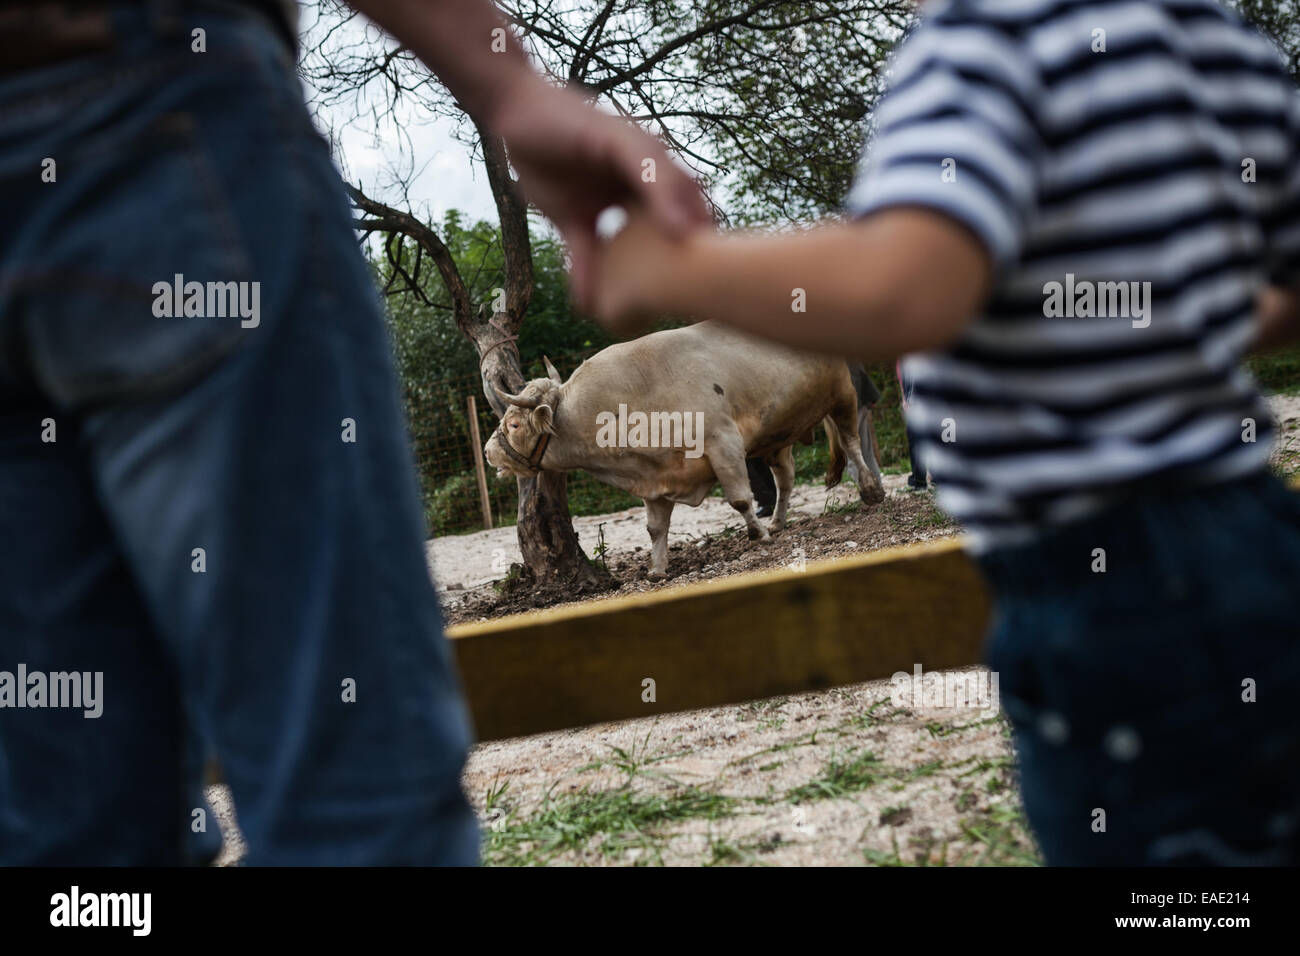 BOSNIA AND HERZEGOVINA / Vitez / Grandfather and his grandson watch bull before bullfight in central Bosnian town Stock Photo